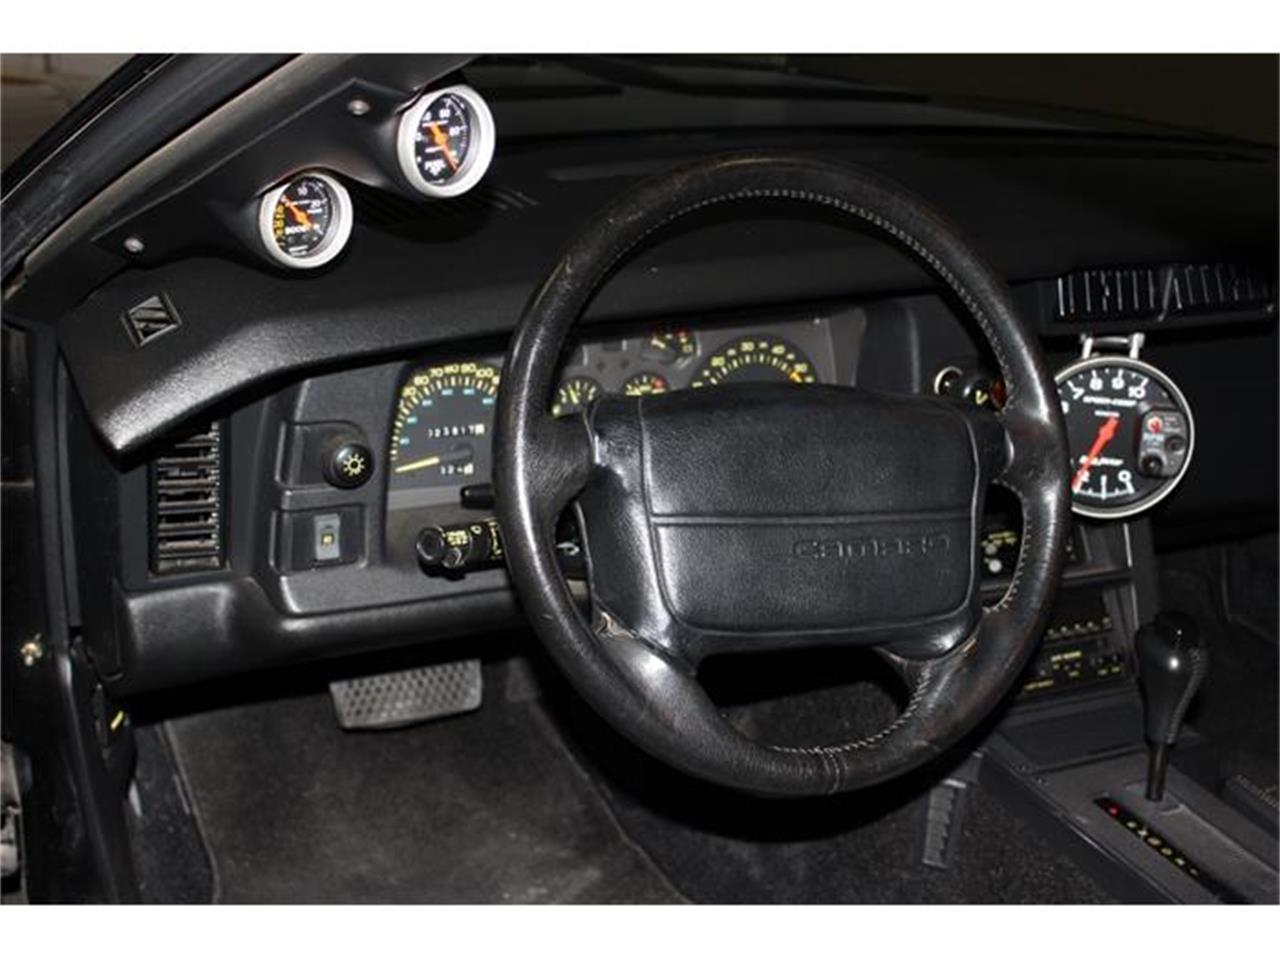 Large Picture of 1991 Chevrolet Camaro Z28 located in North Carolina - $52,000.00 - GPGQ